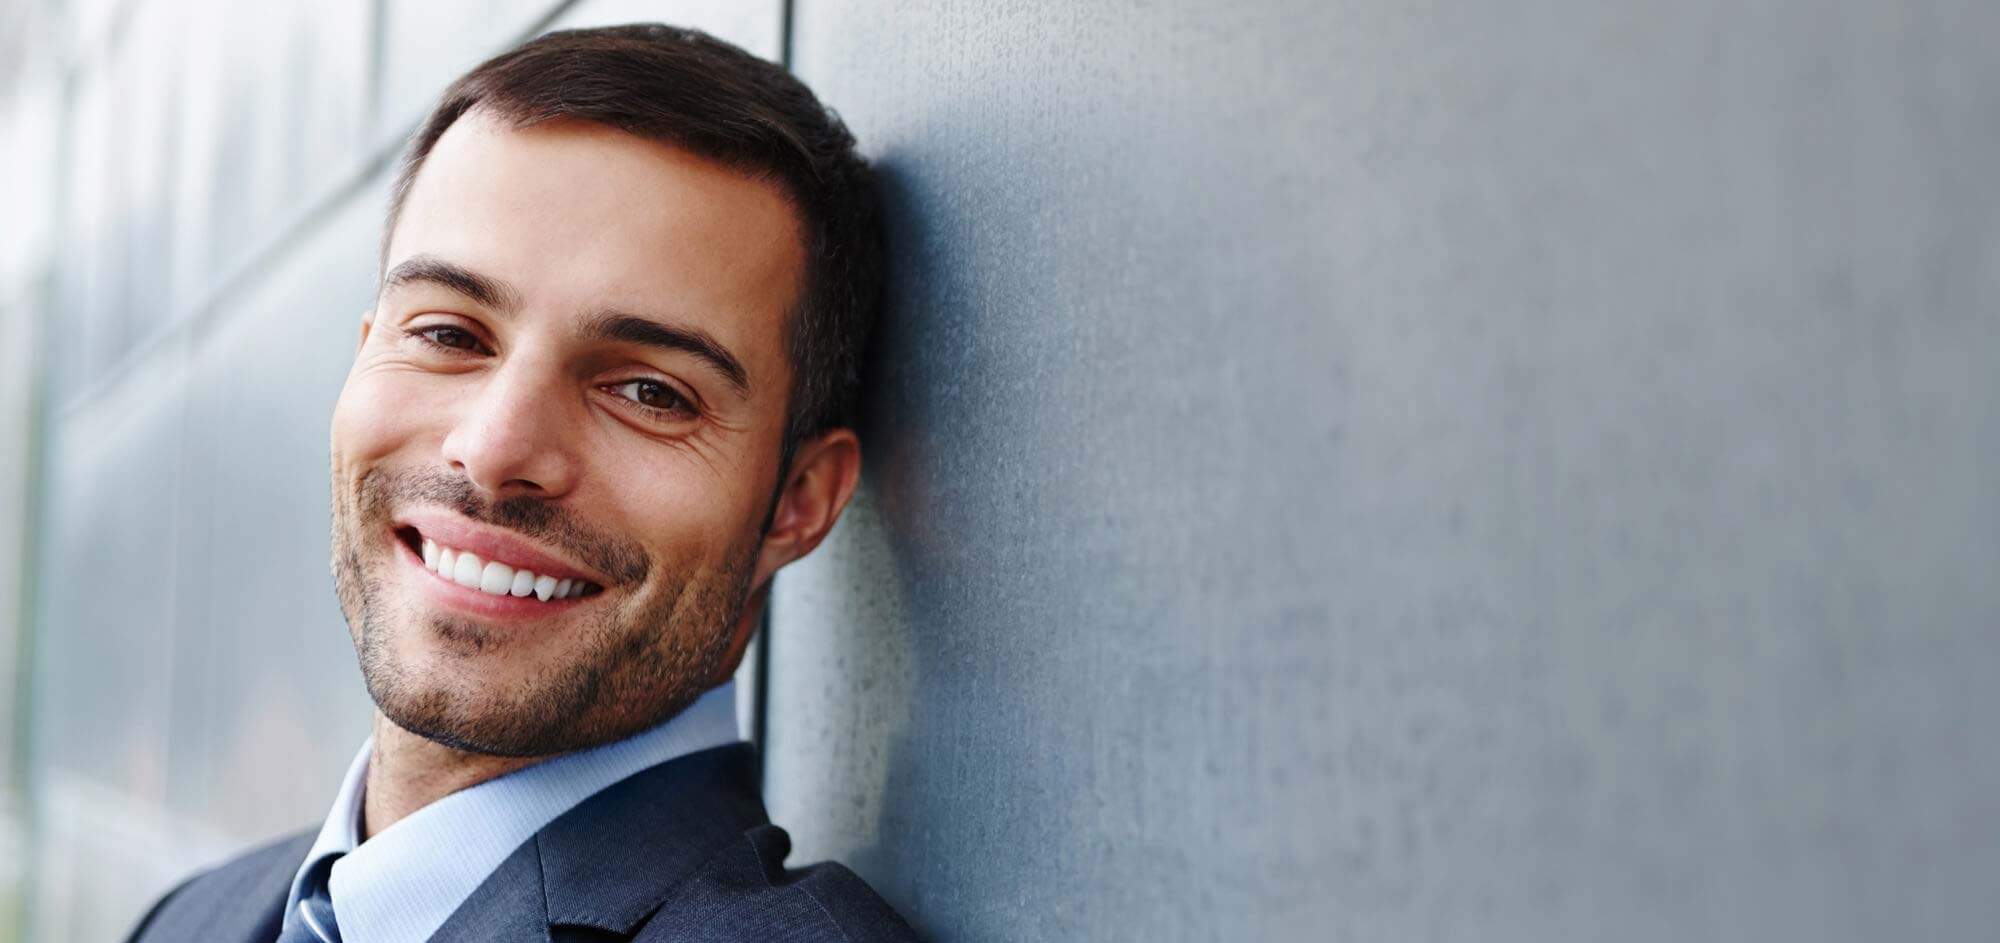 Man satisfied with expert advice on hair transplant